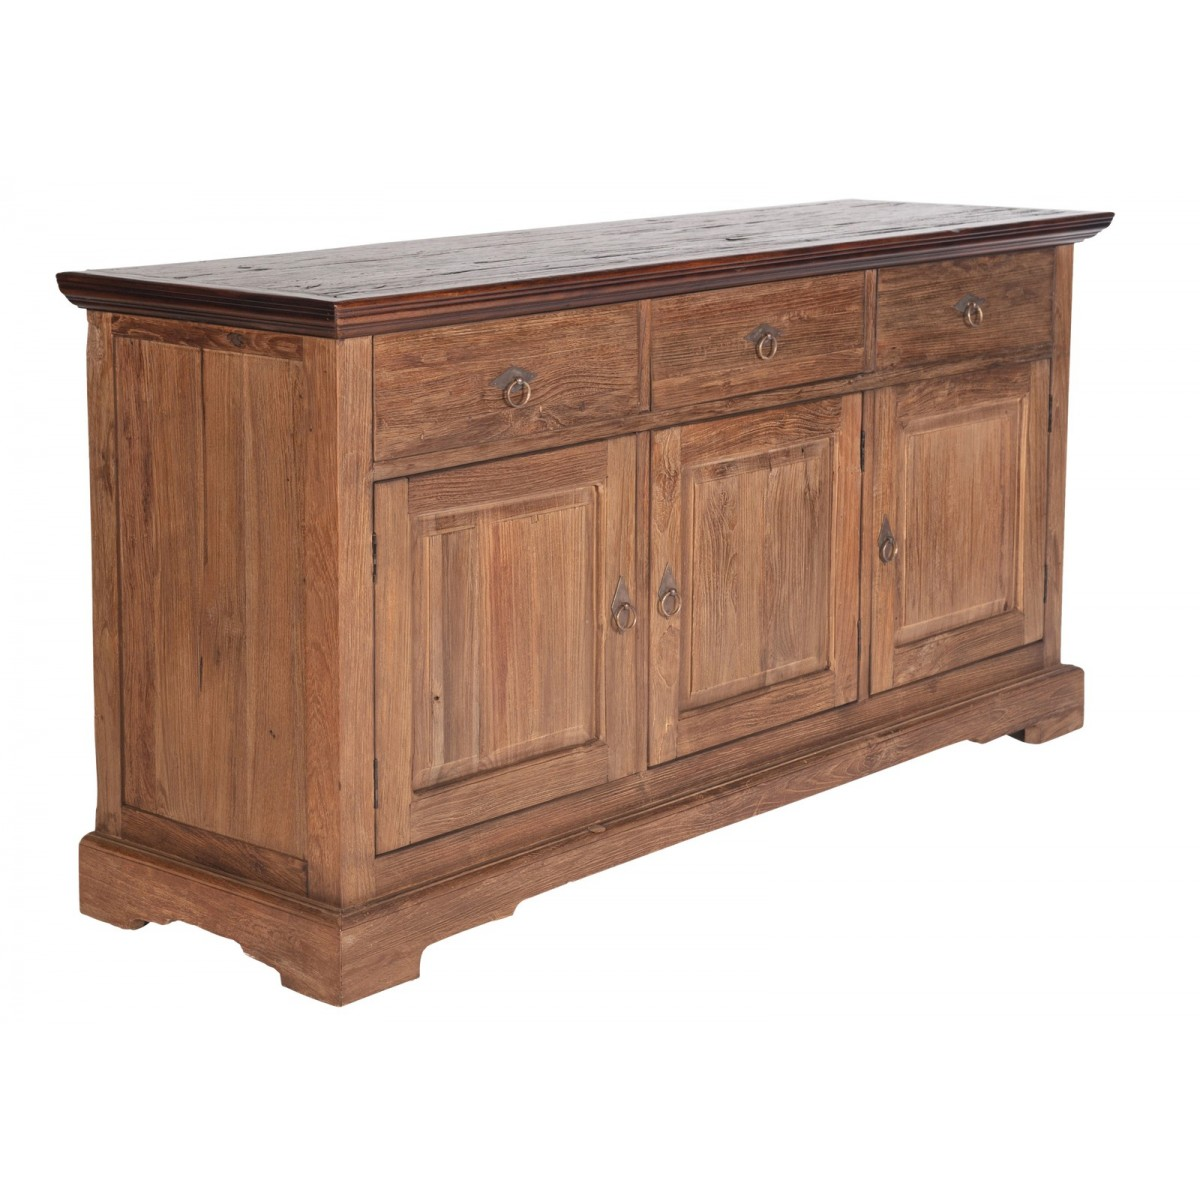 Credenza Country Drain in...